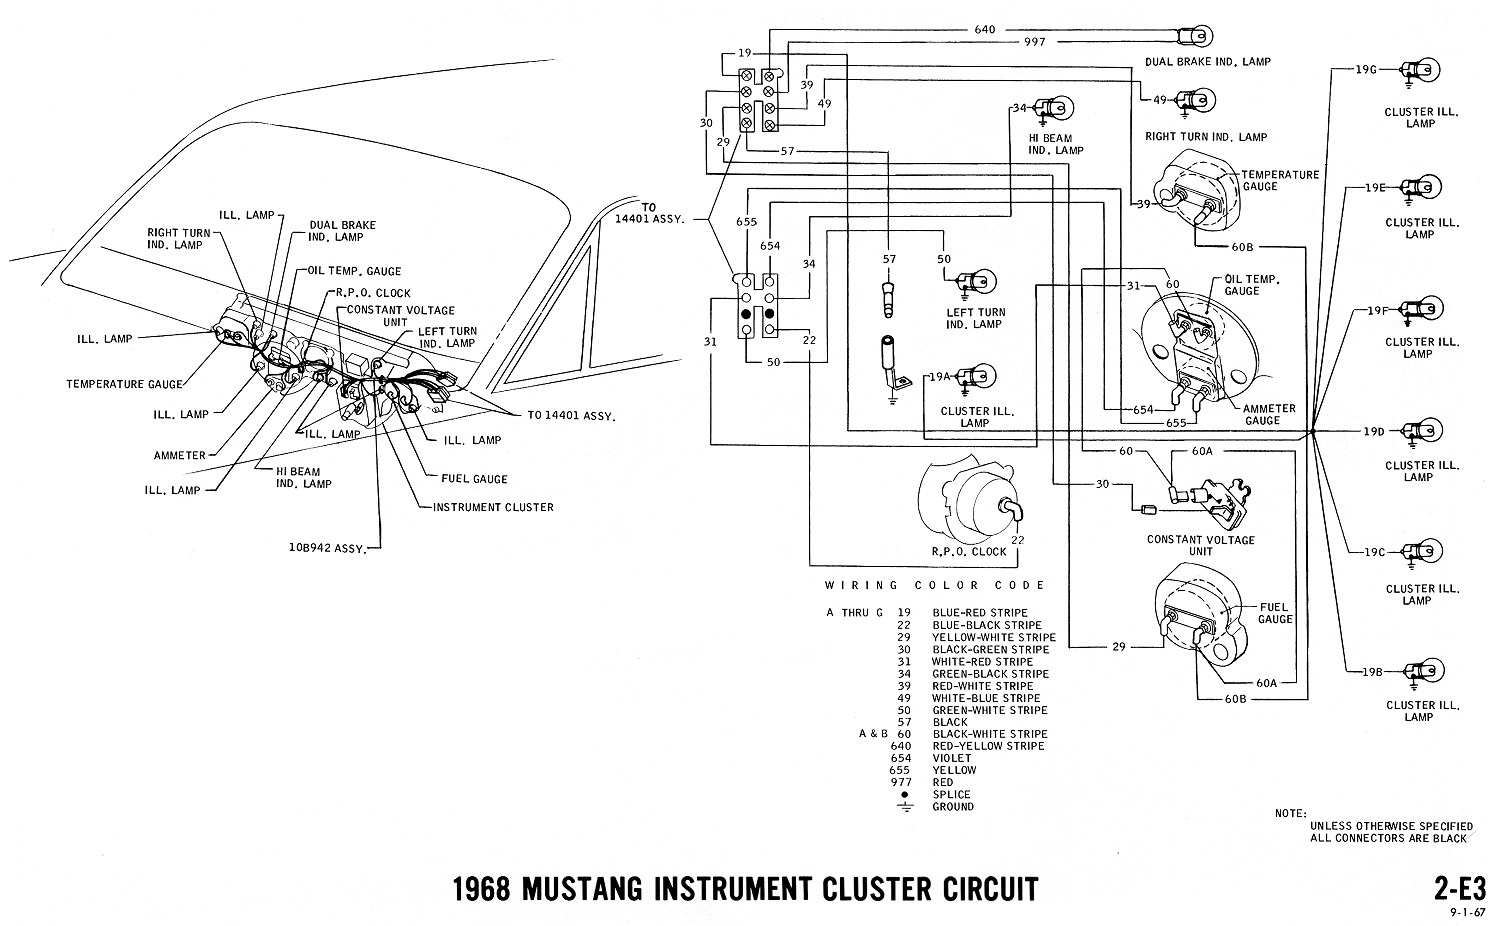 5vxq9 Ford 250 Looking  plete Vacuum Diagram 1991 moreover F150 Steering Column Wiring Car Wiring Diagram Download Regarding 1974 Bronco Steering Column Schematic besides 1968 Mustang Wiring Diagram Vacuum Schematics also Schematics i additionally 1991 Ford F150 Fuse Box Diagram. on 1986 ford bronco